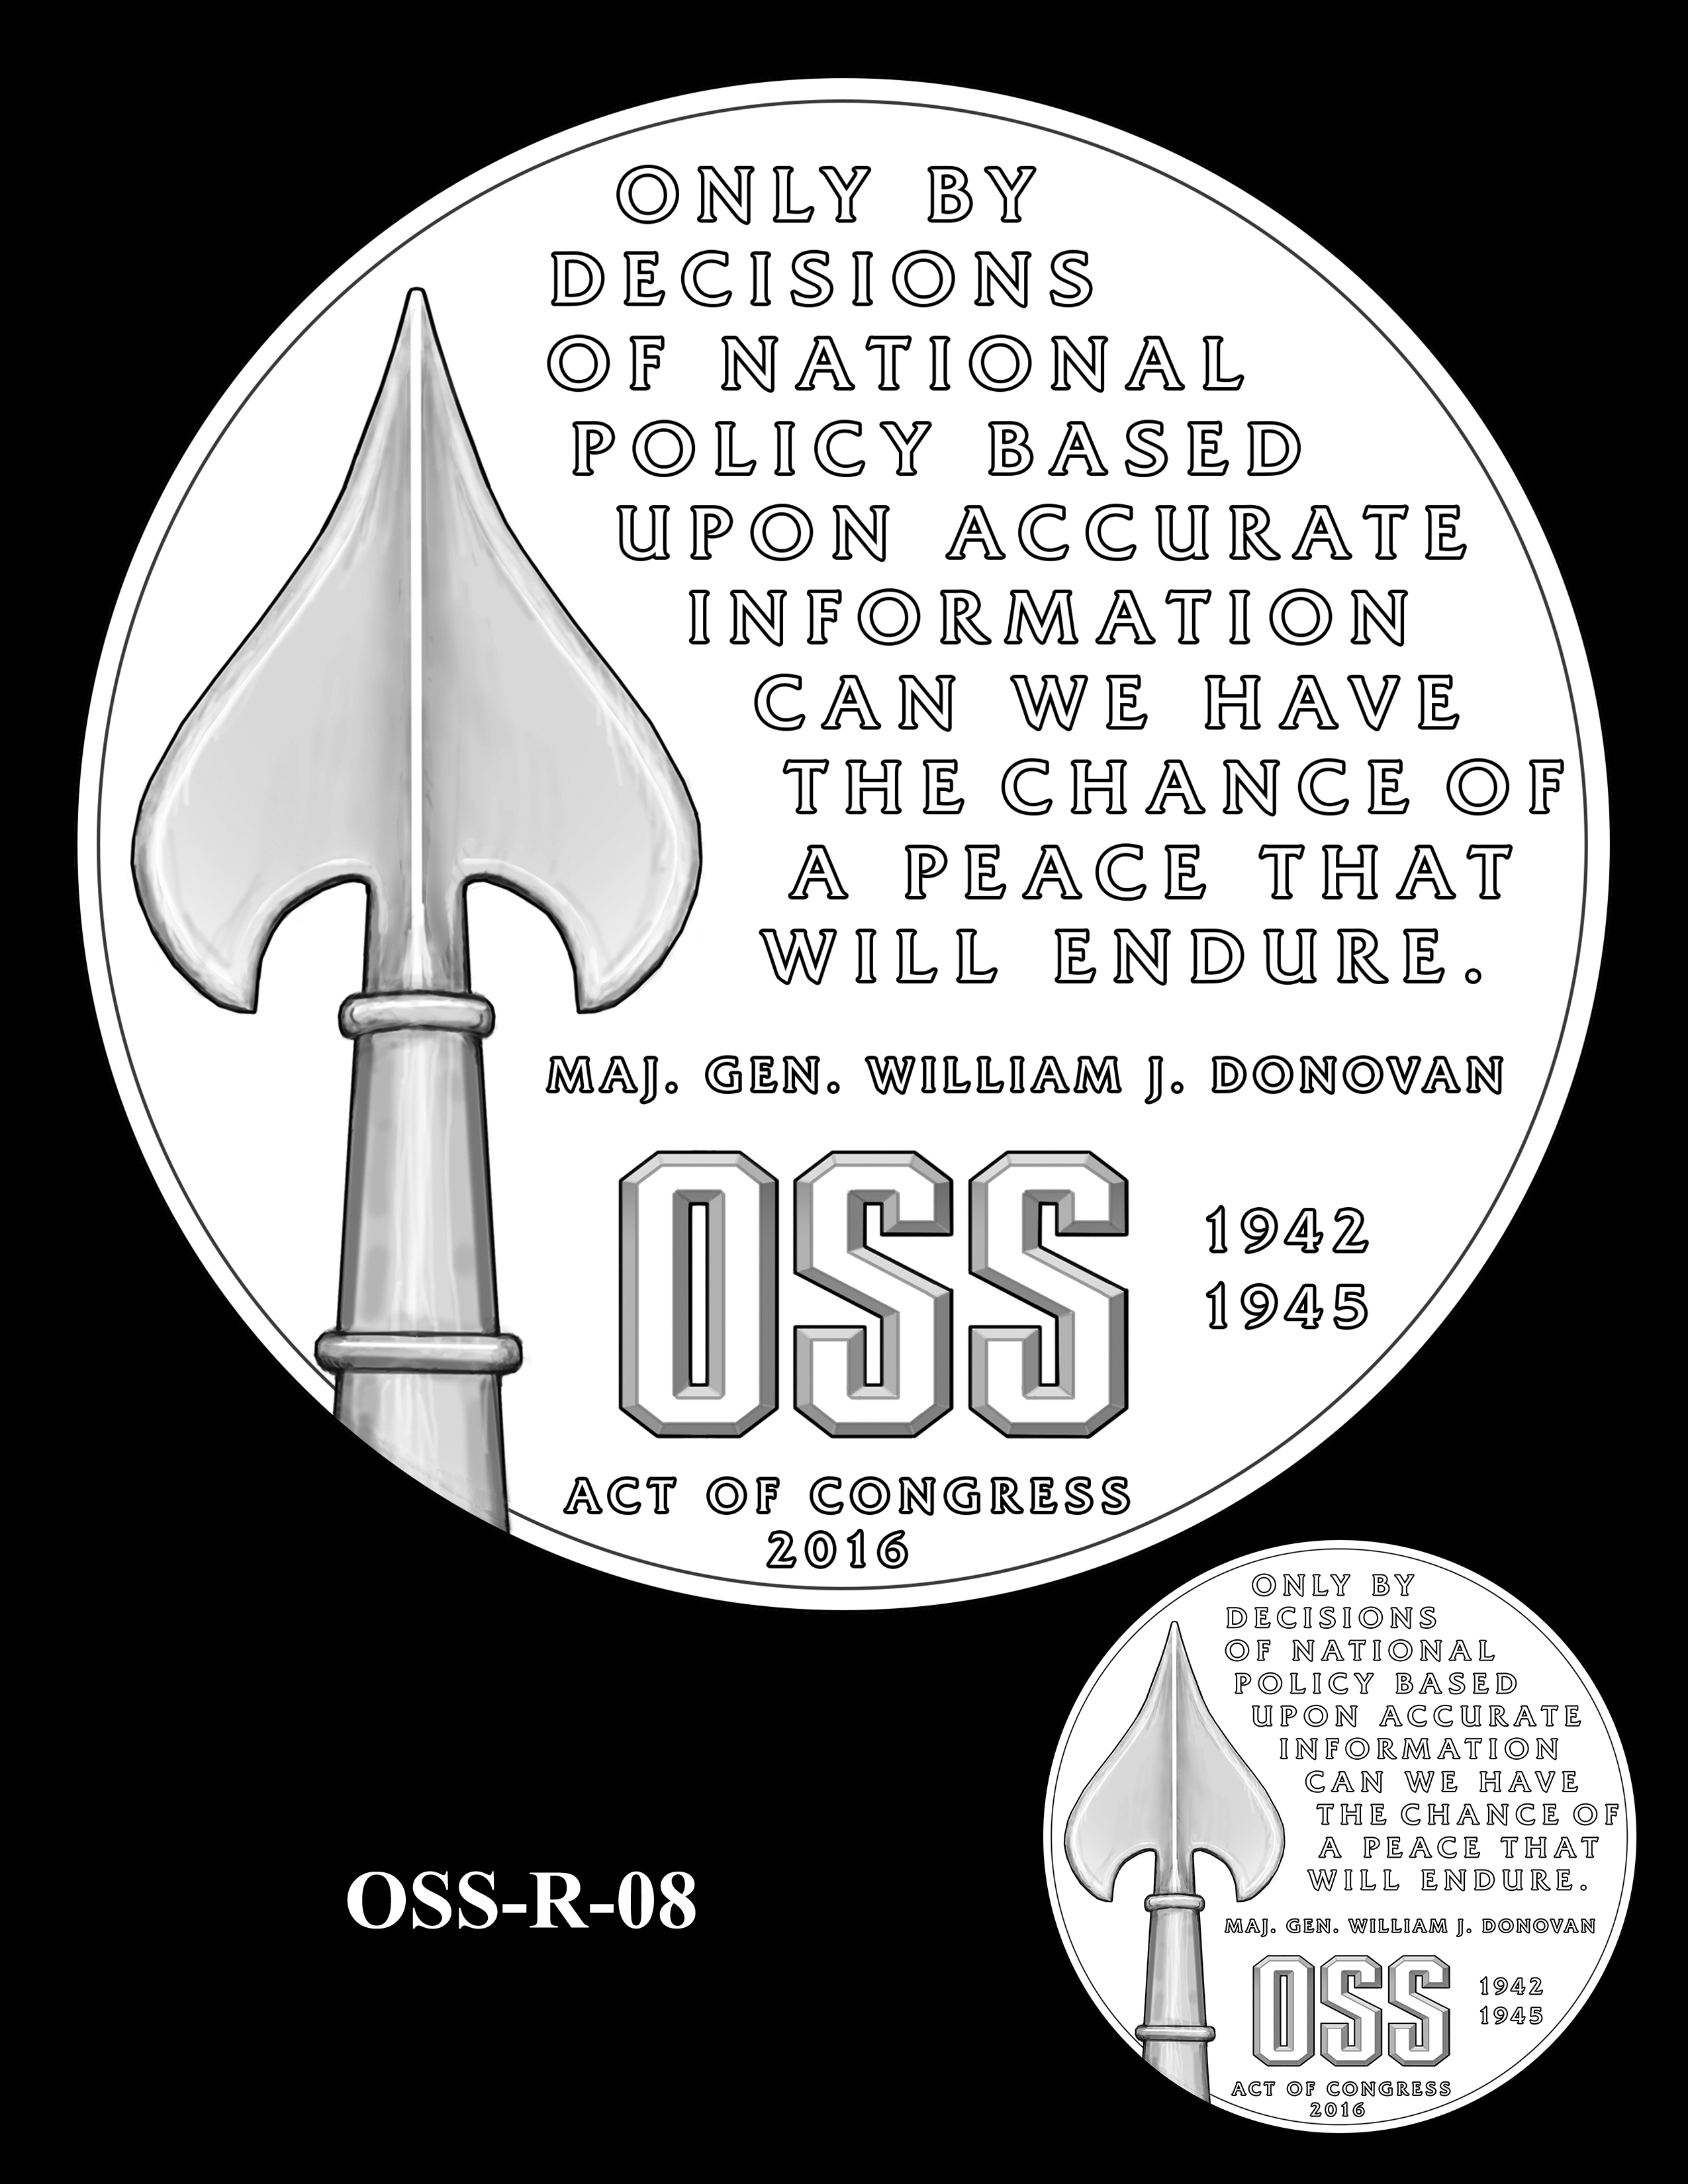 OSS-R-08 -- Office of Strategic Services Congressional Gold Medal